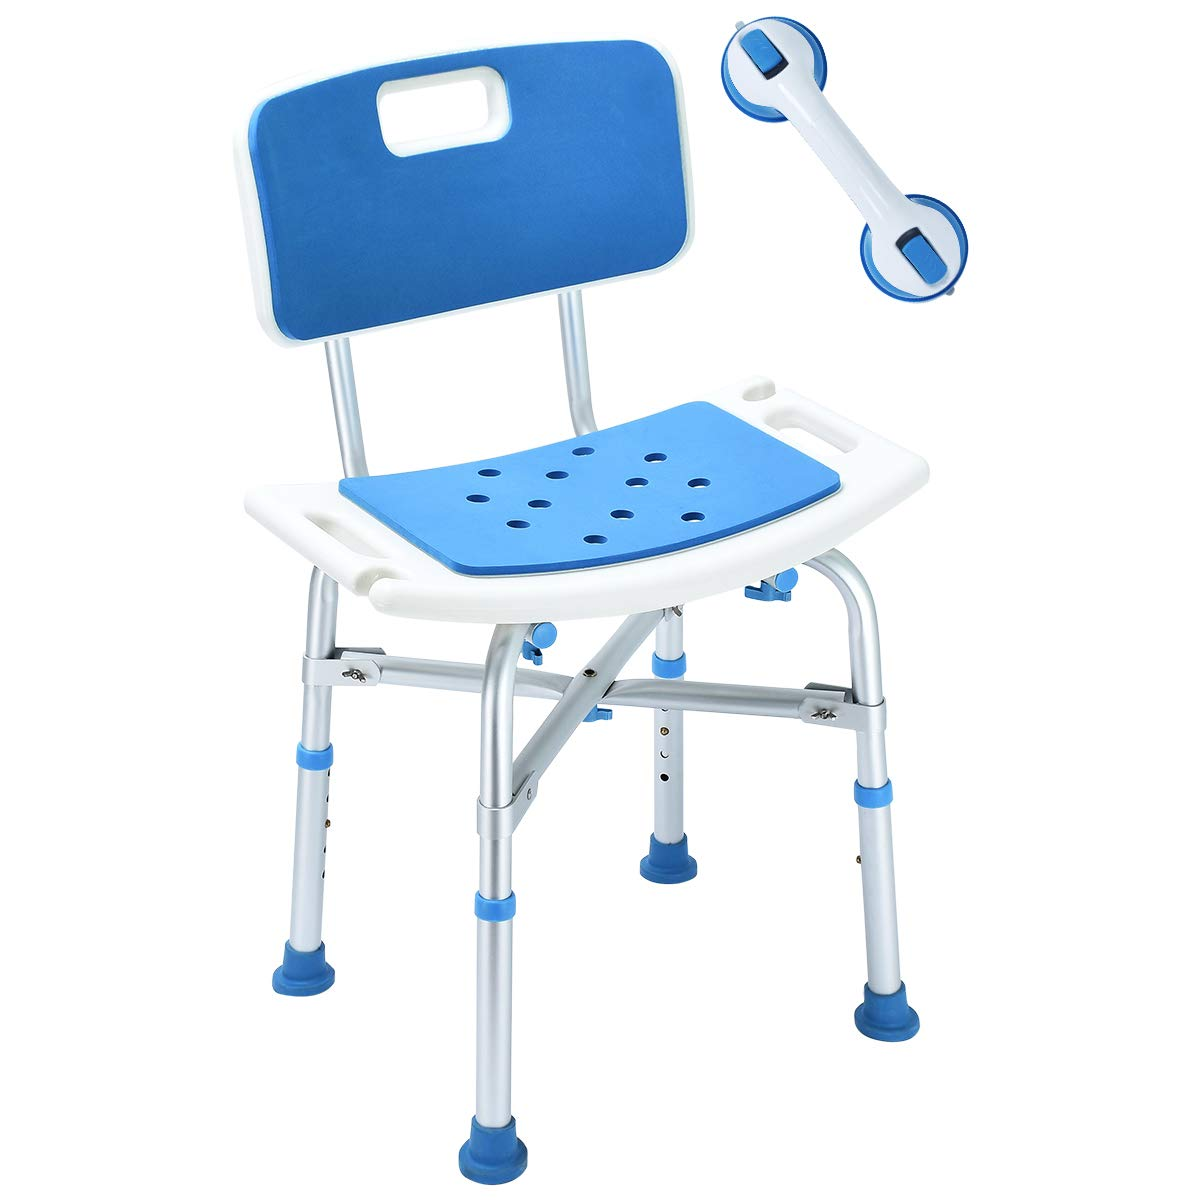 2018 Upgraded 500 lbs Cap. Shower Chair, Bariatric Heavy Duty Bath Chair Transfer Bench w/EVA Paded Seat and Assist Grab Bar (White/Blue)